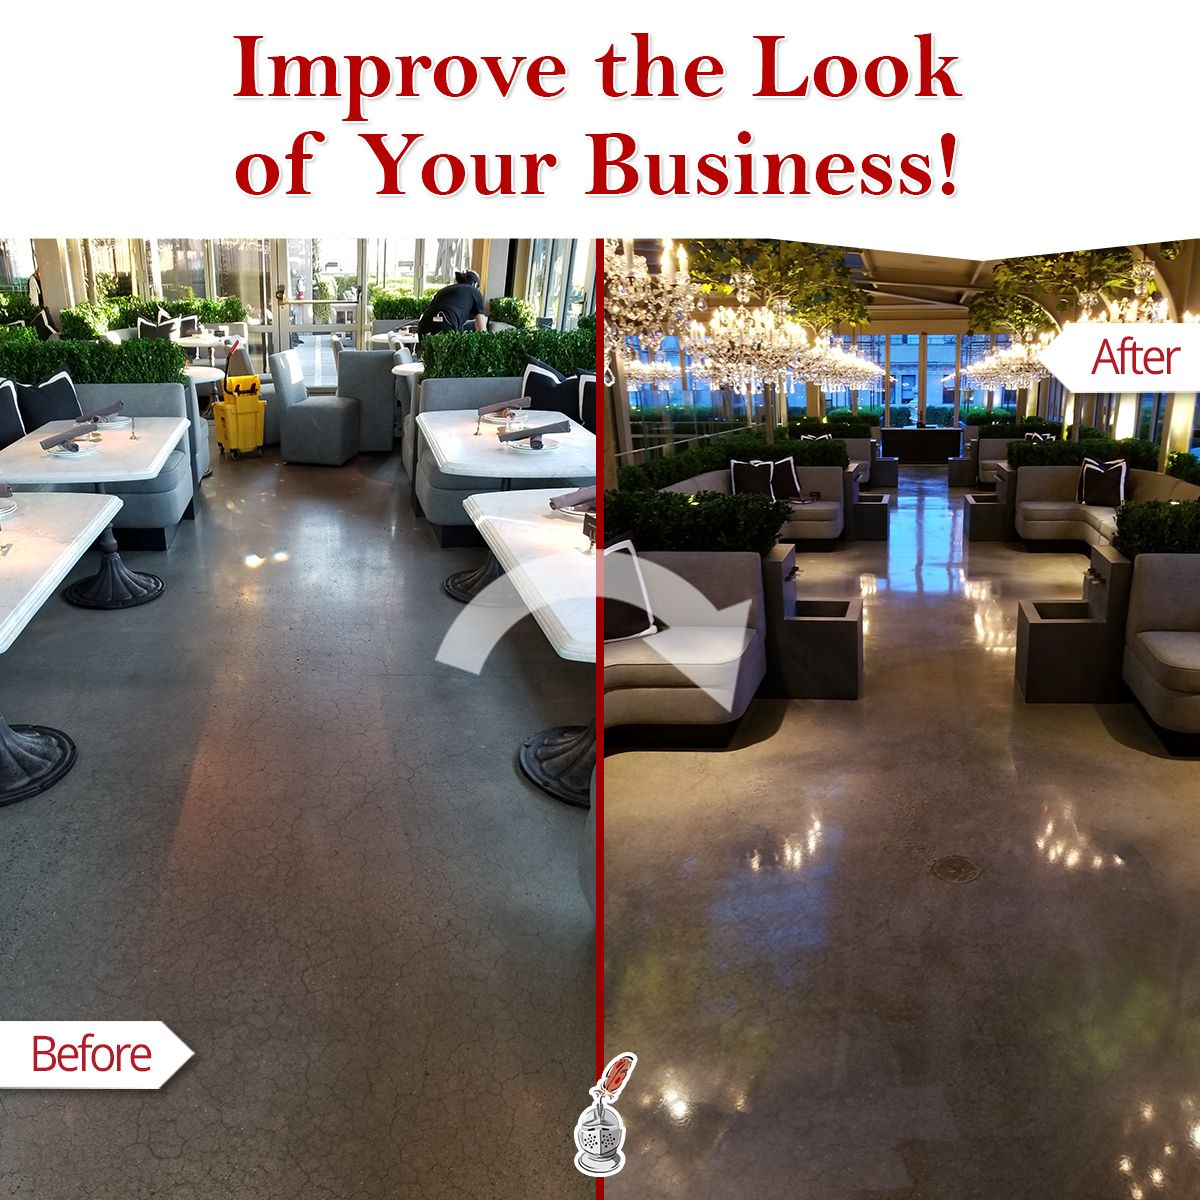 Improve the Look of Your Business!